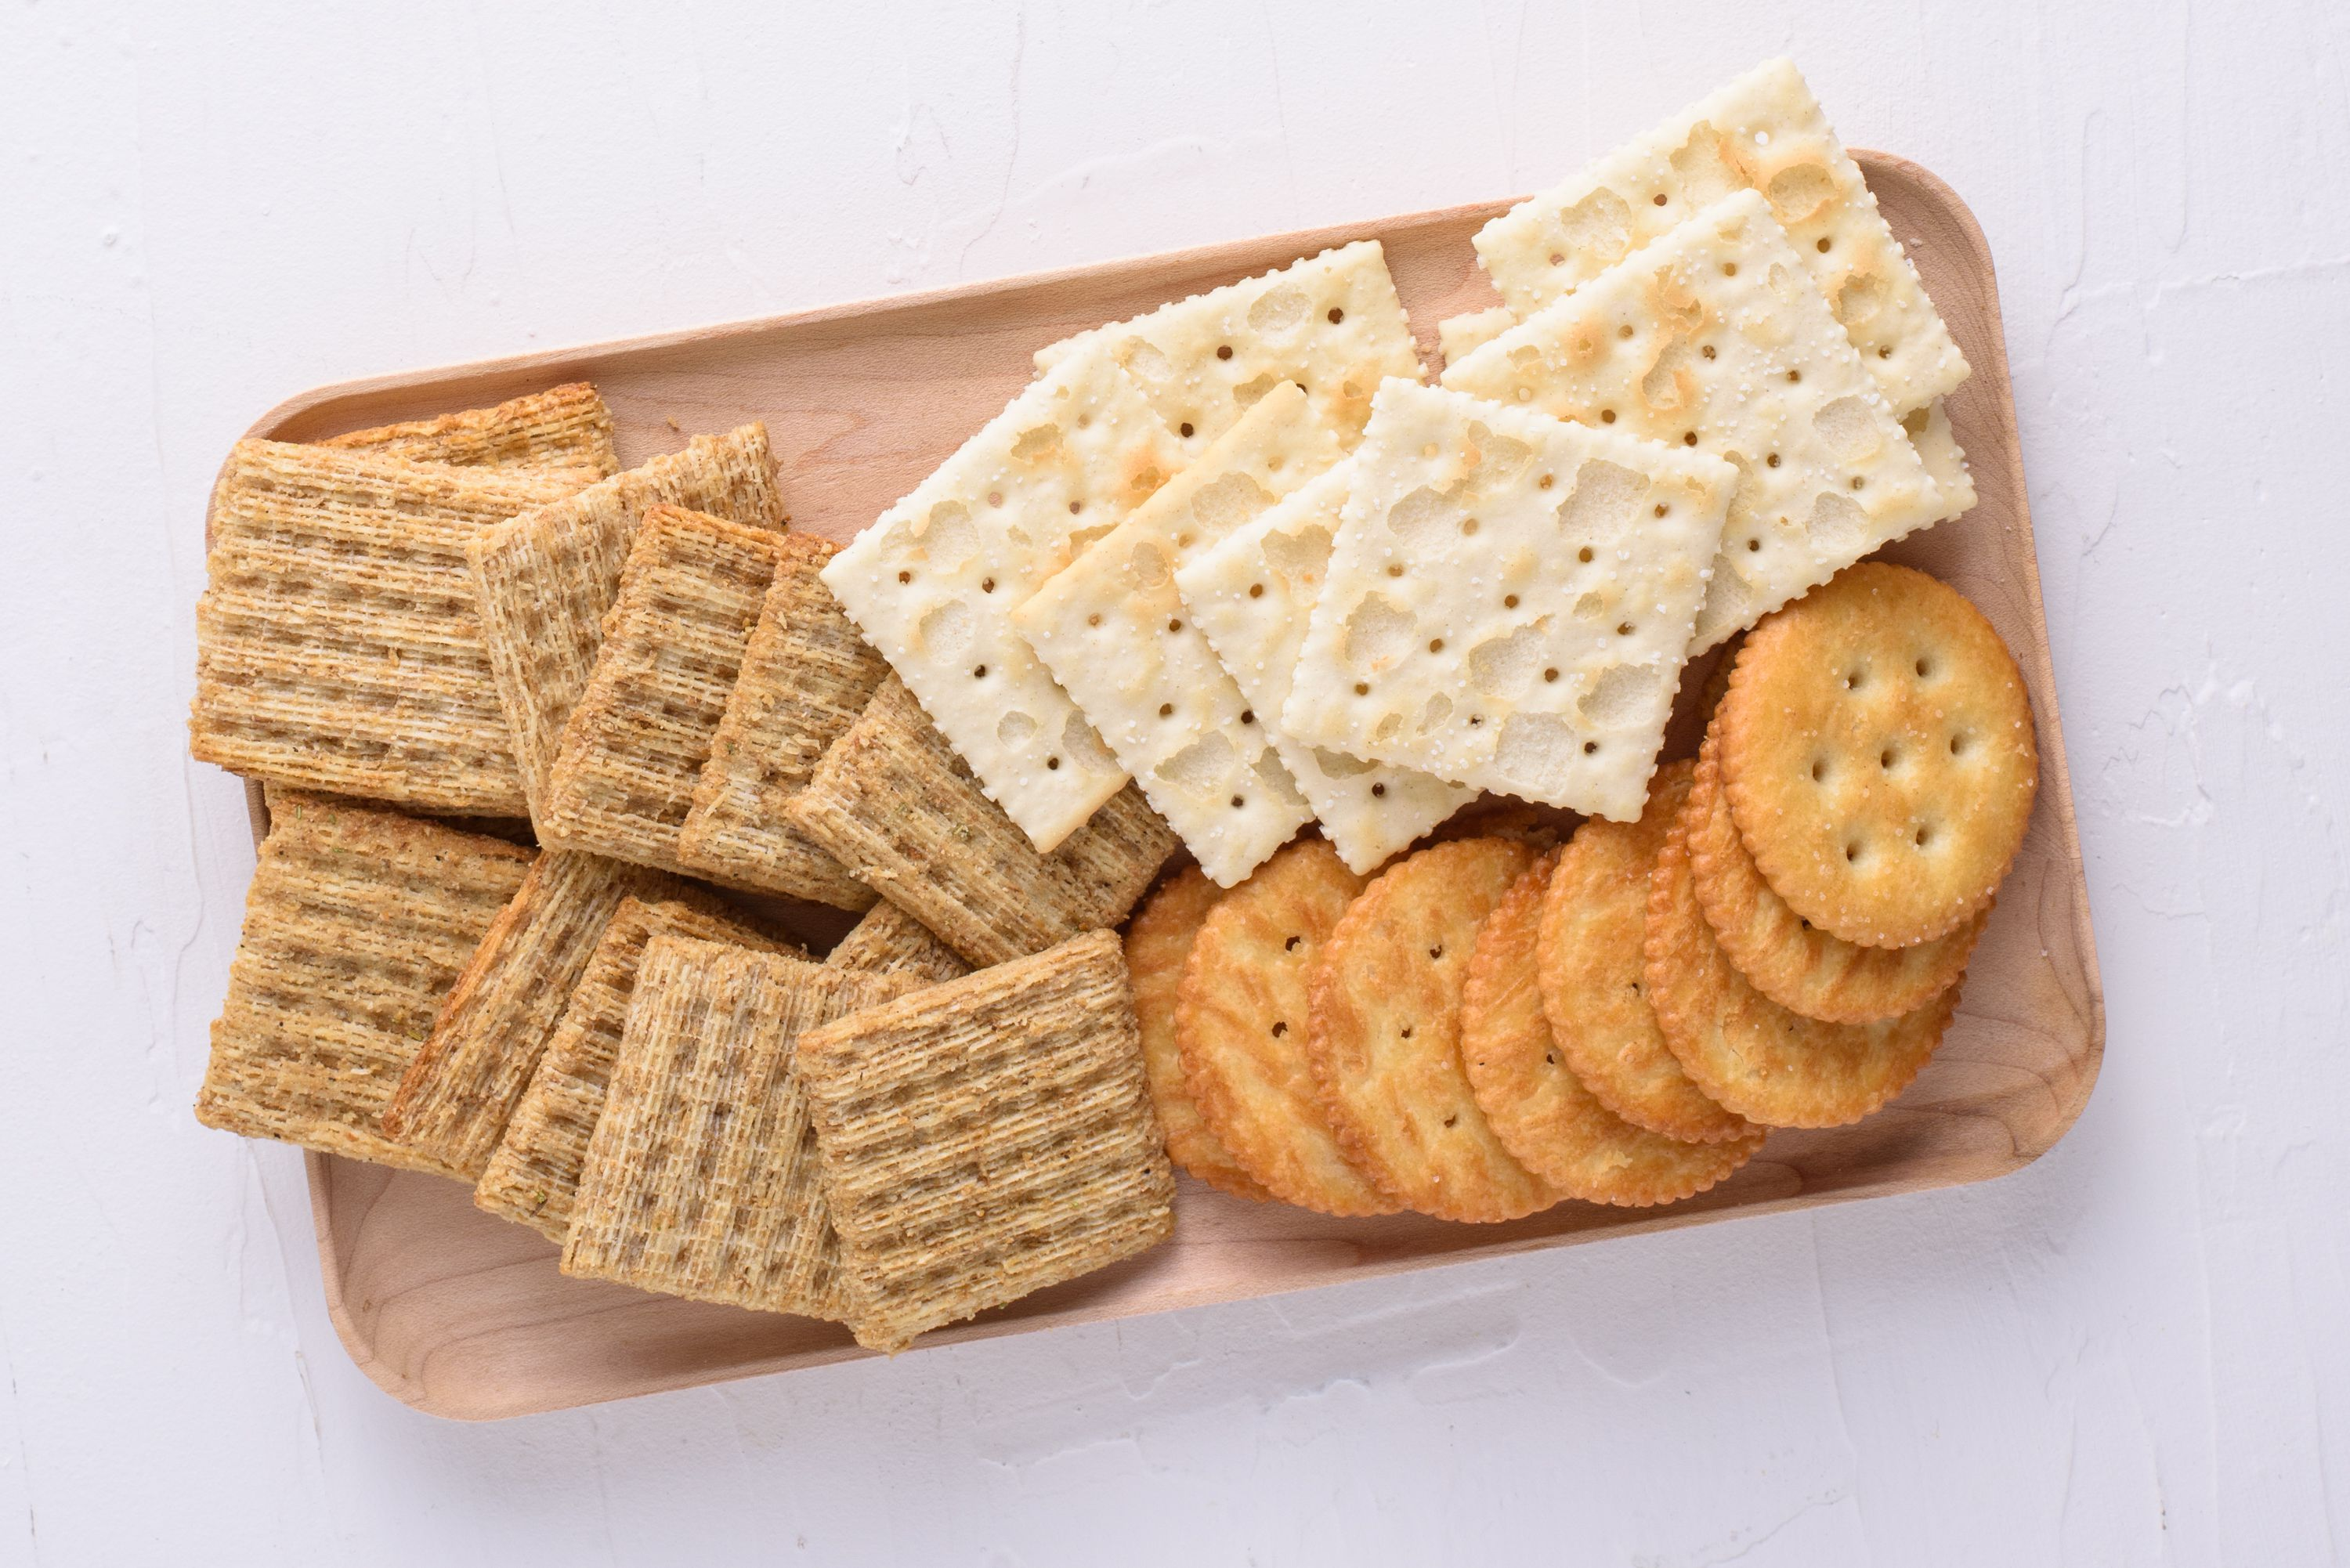 crackers-crop-3b8f8bf4a410479682c41e3e6f563f57-15961831620431856907603-1596334679775-15963346804381857367912